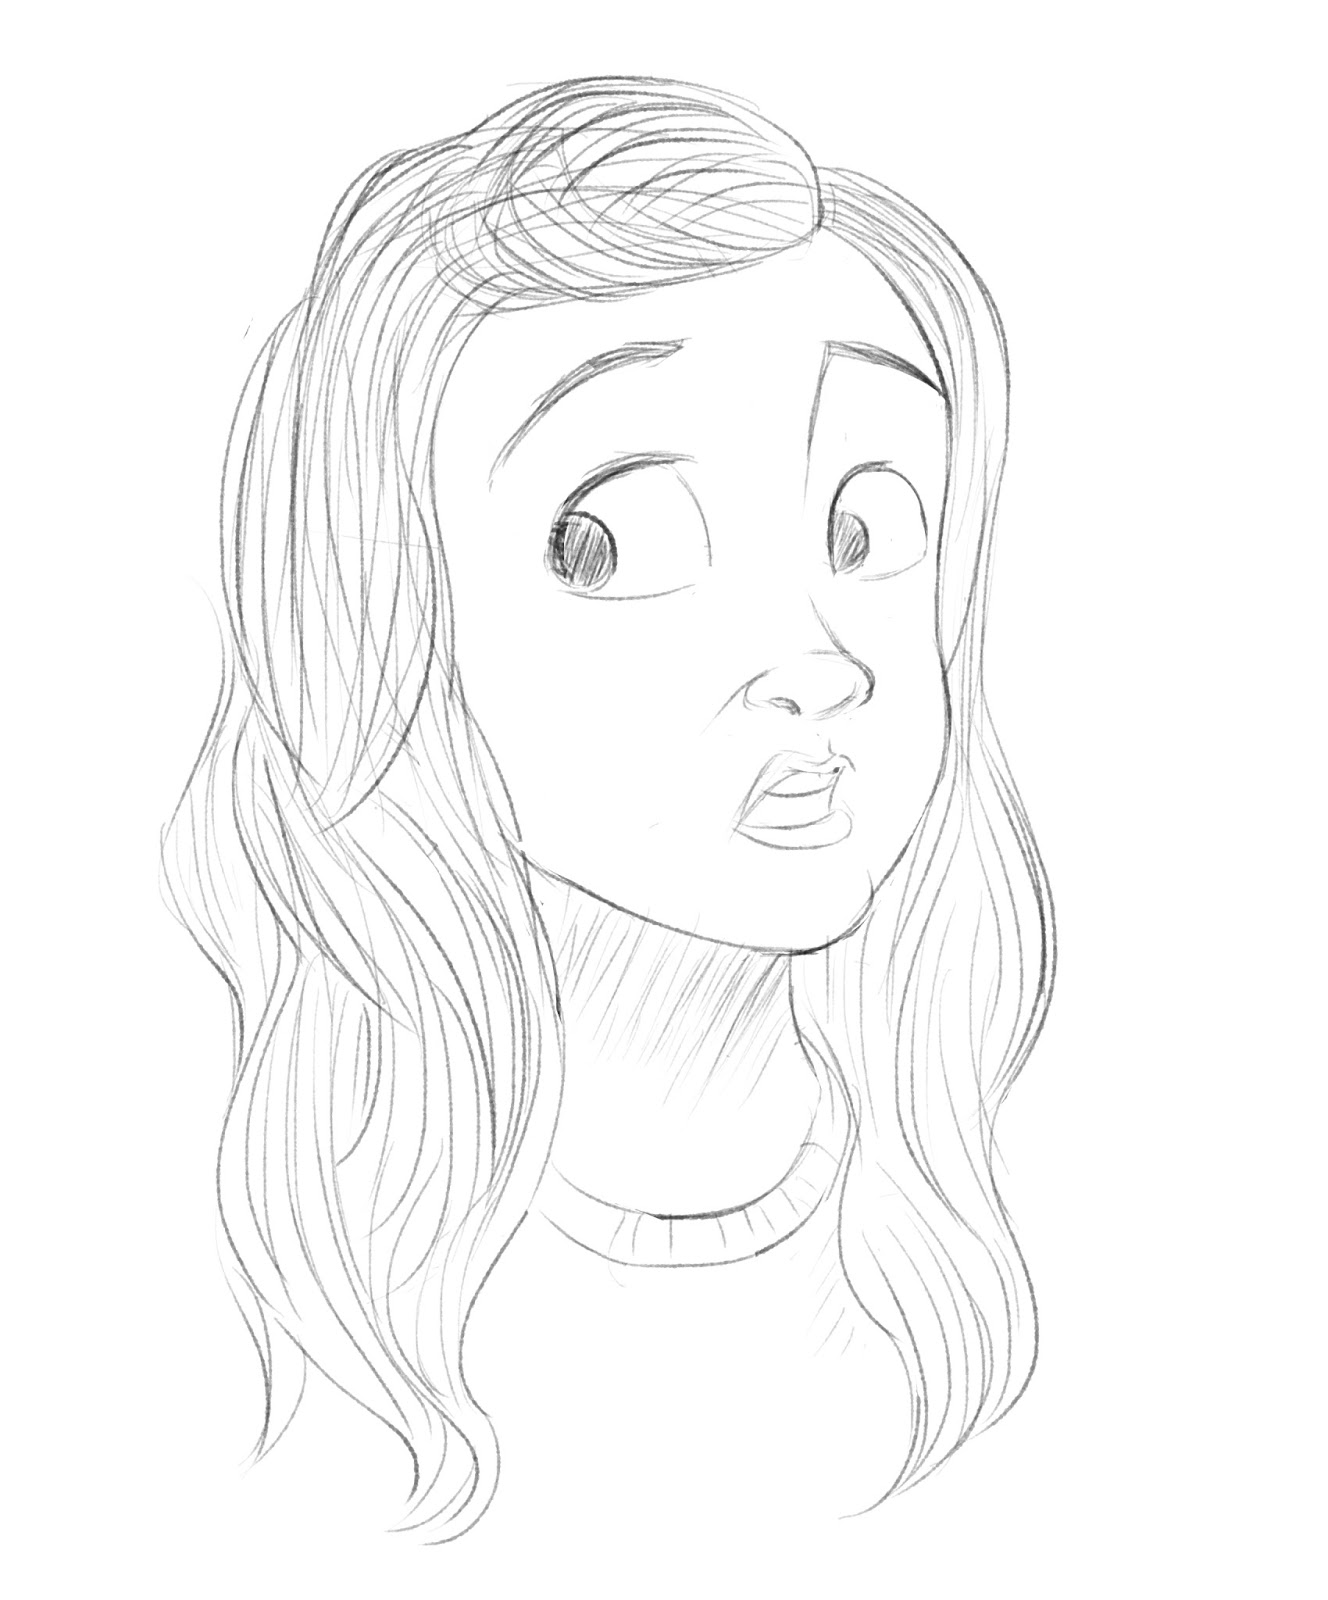 Scared Face Line Drawing : Scared girl drawing at getdrawings free for personal